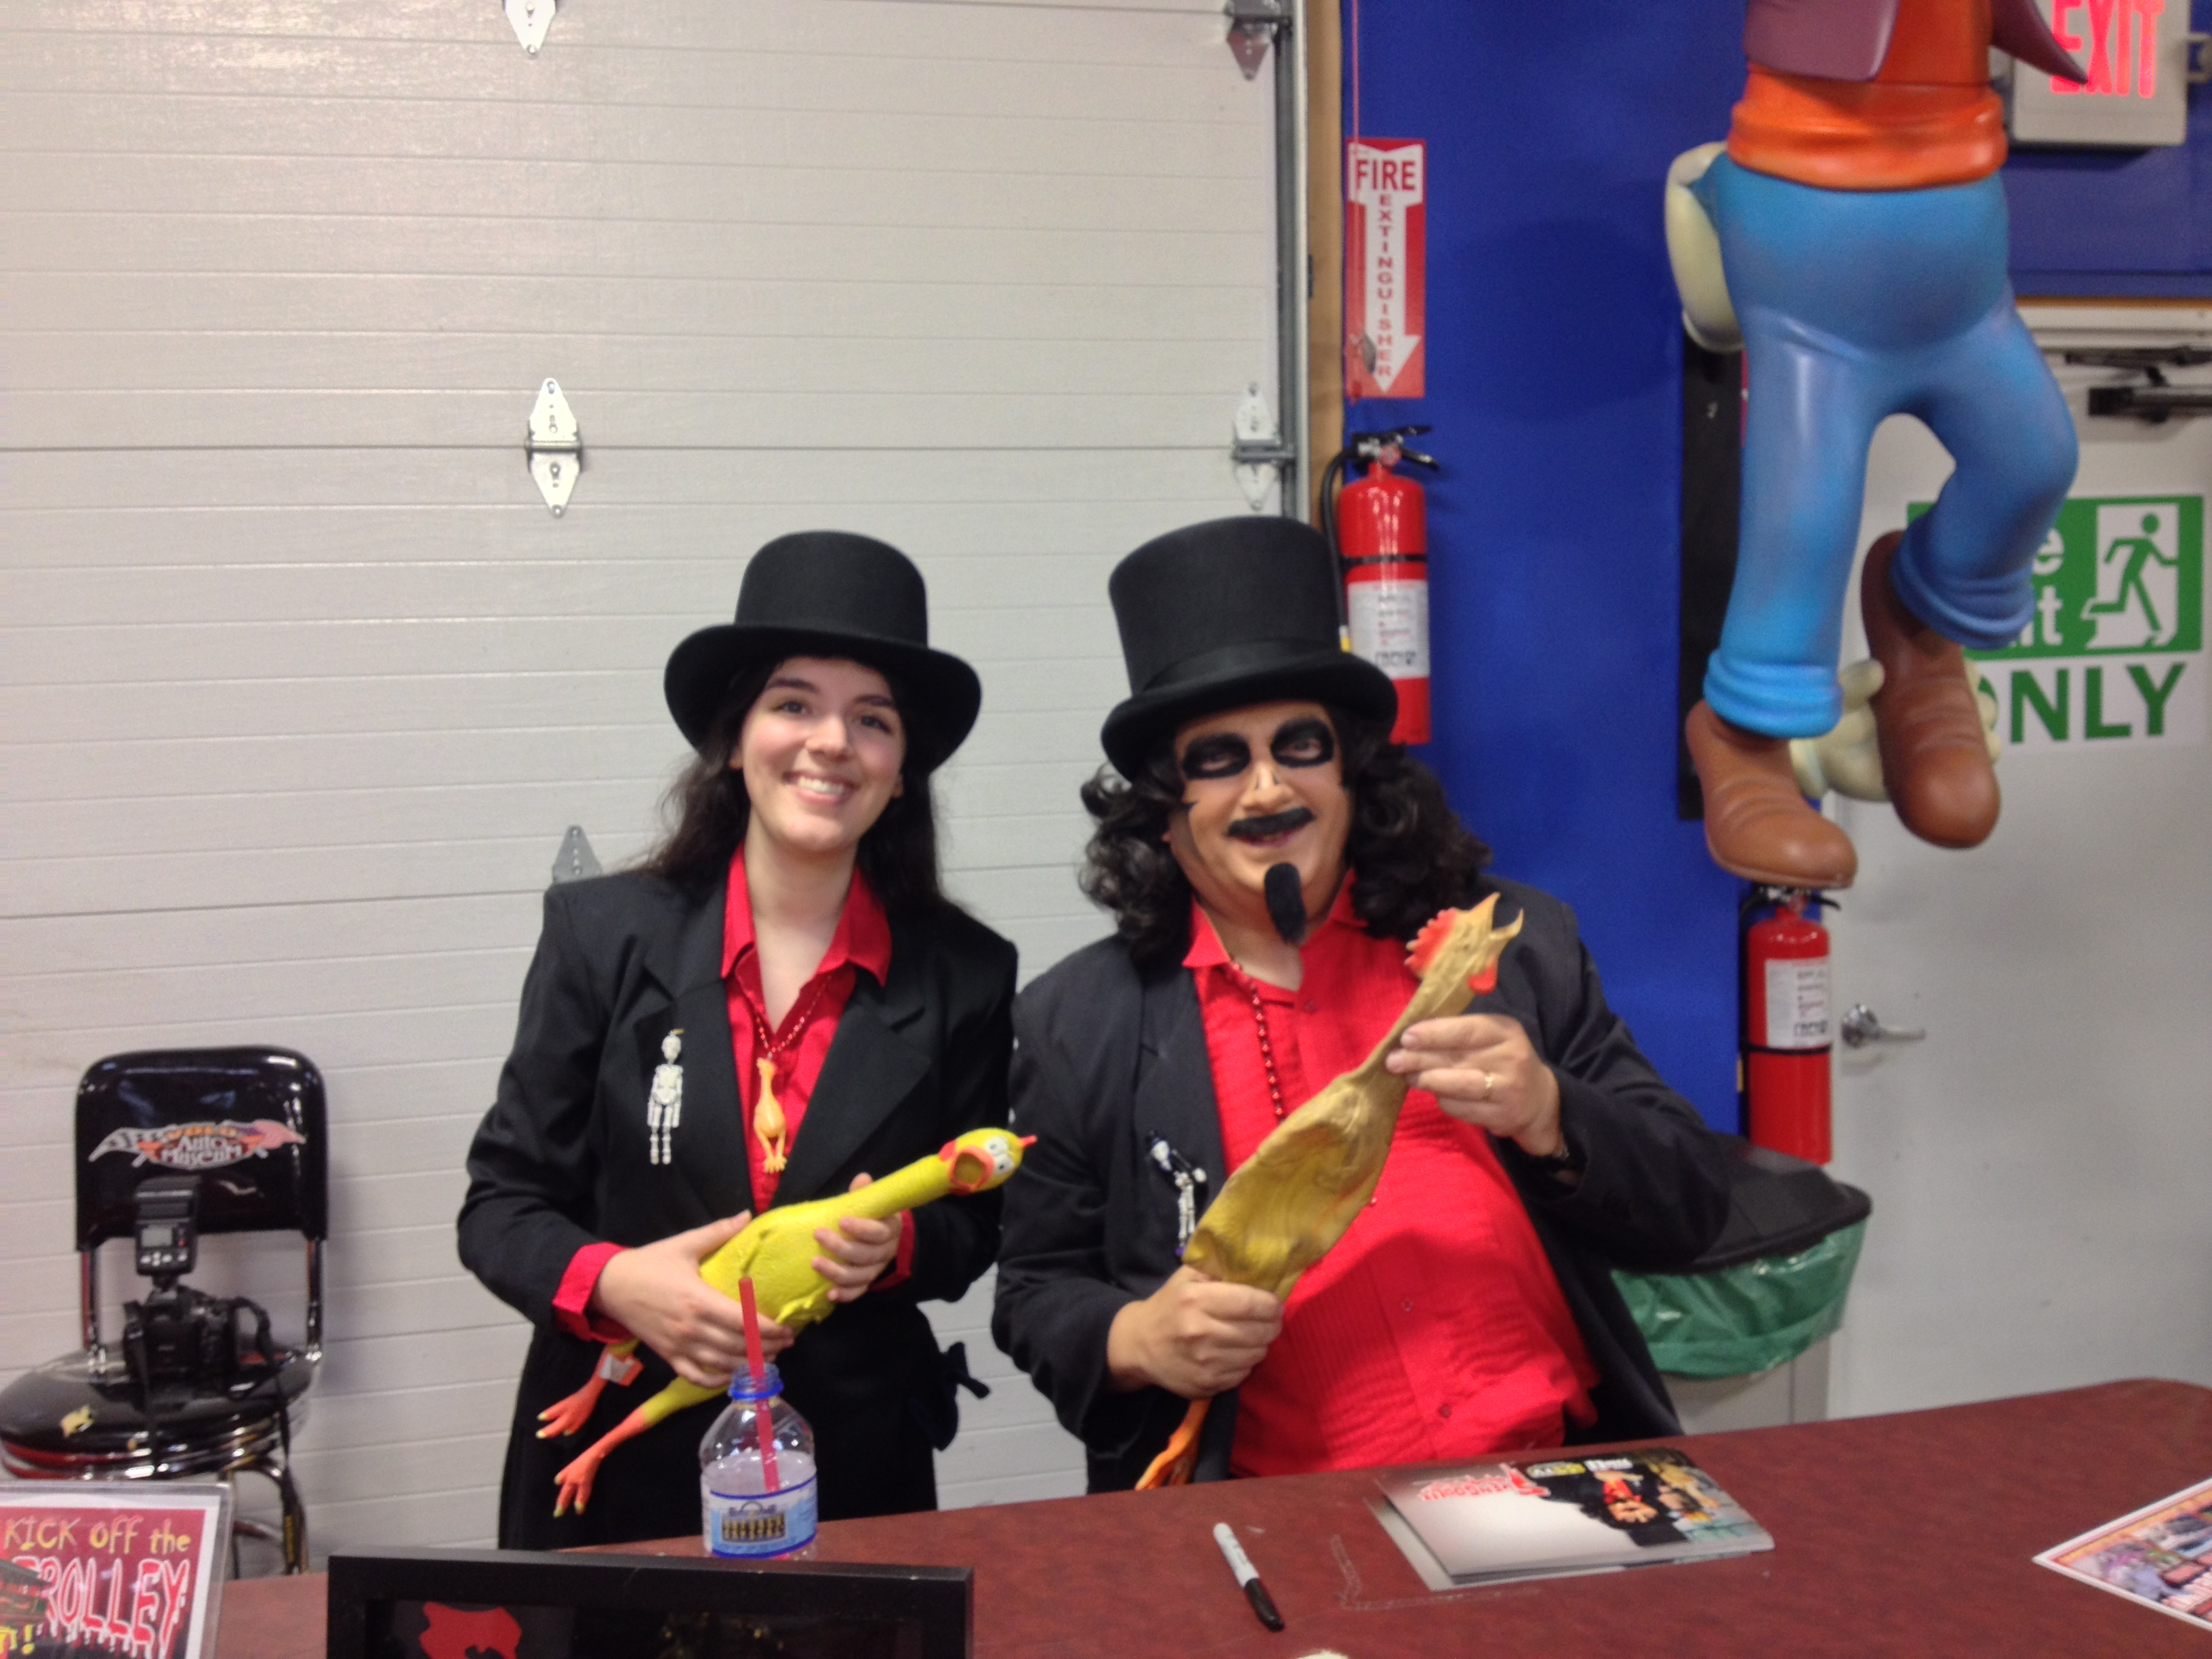 Yes, I met Svengoolie again! (And I dressed up for the occasion, too!)